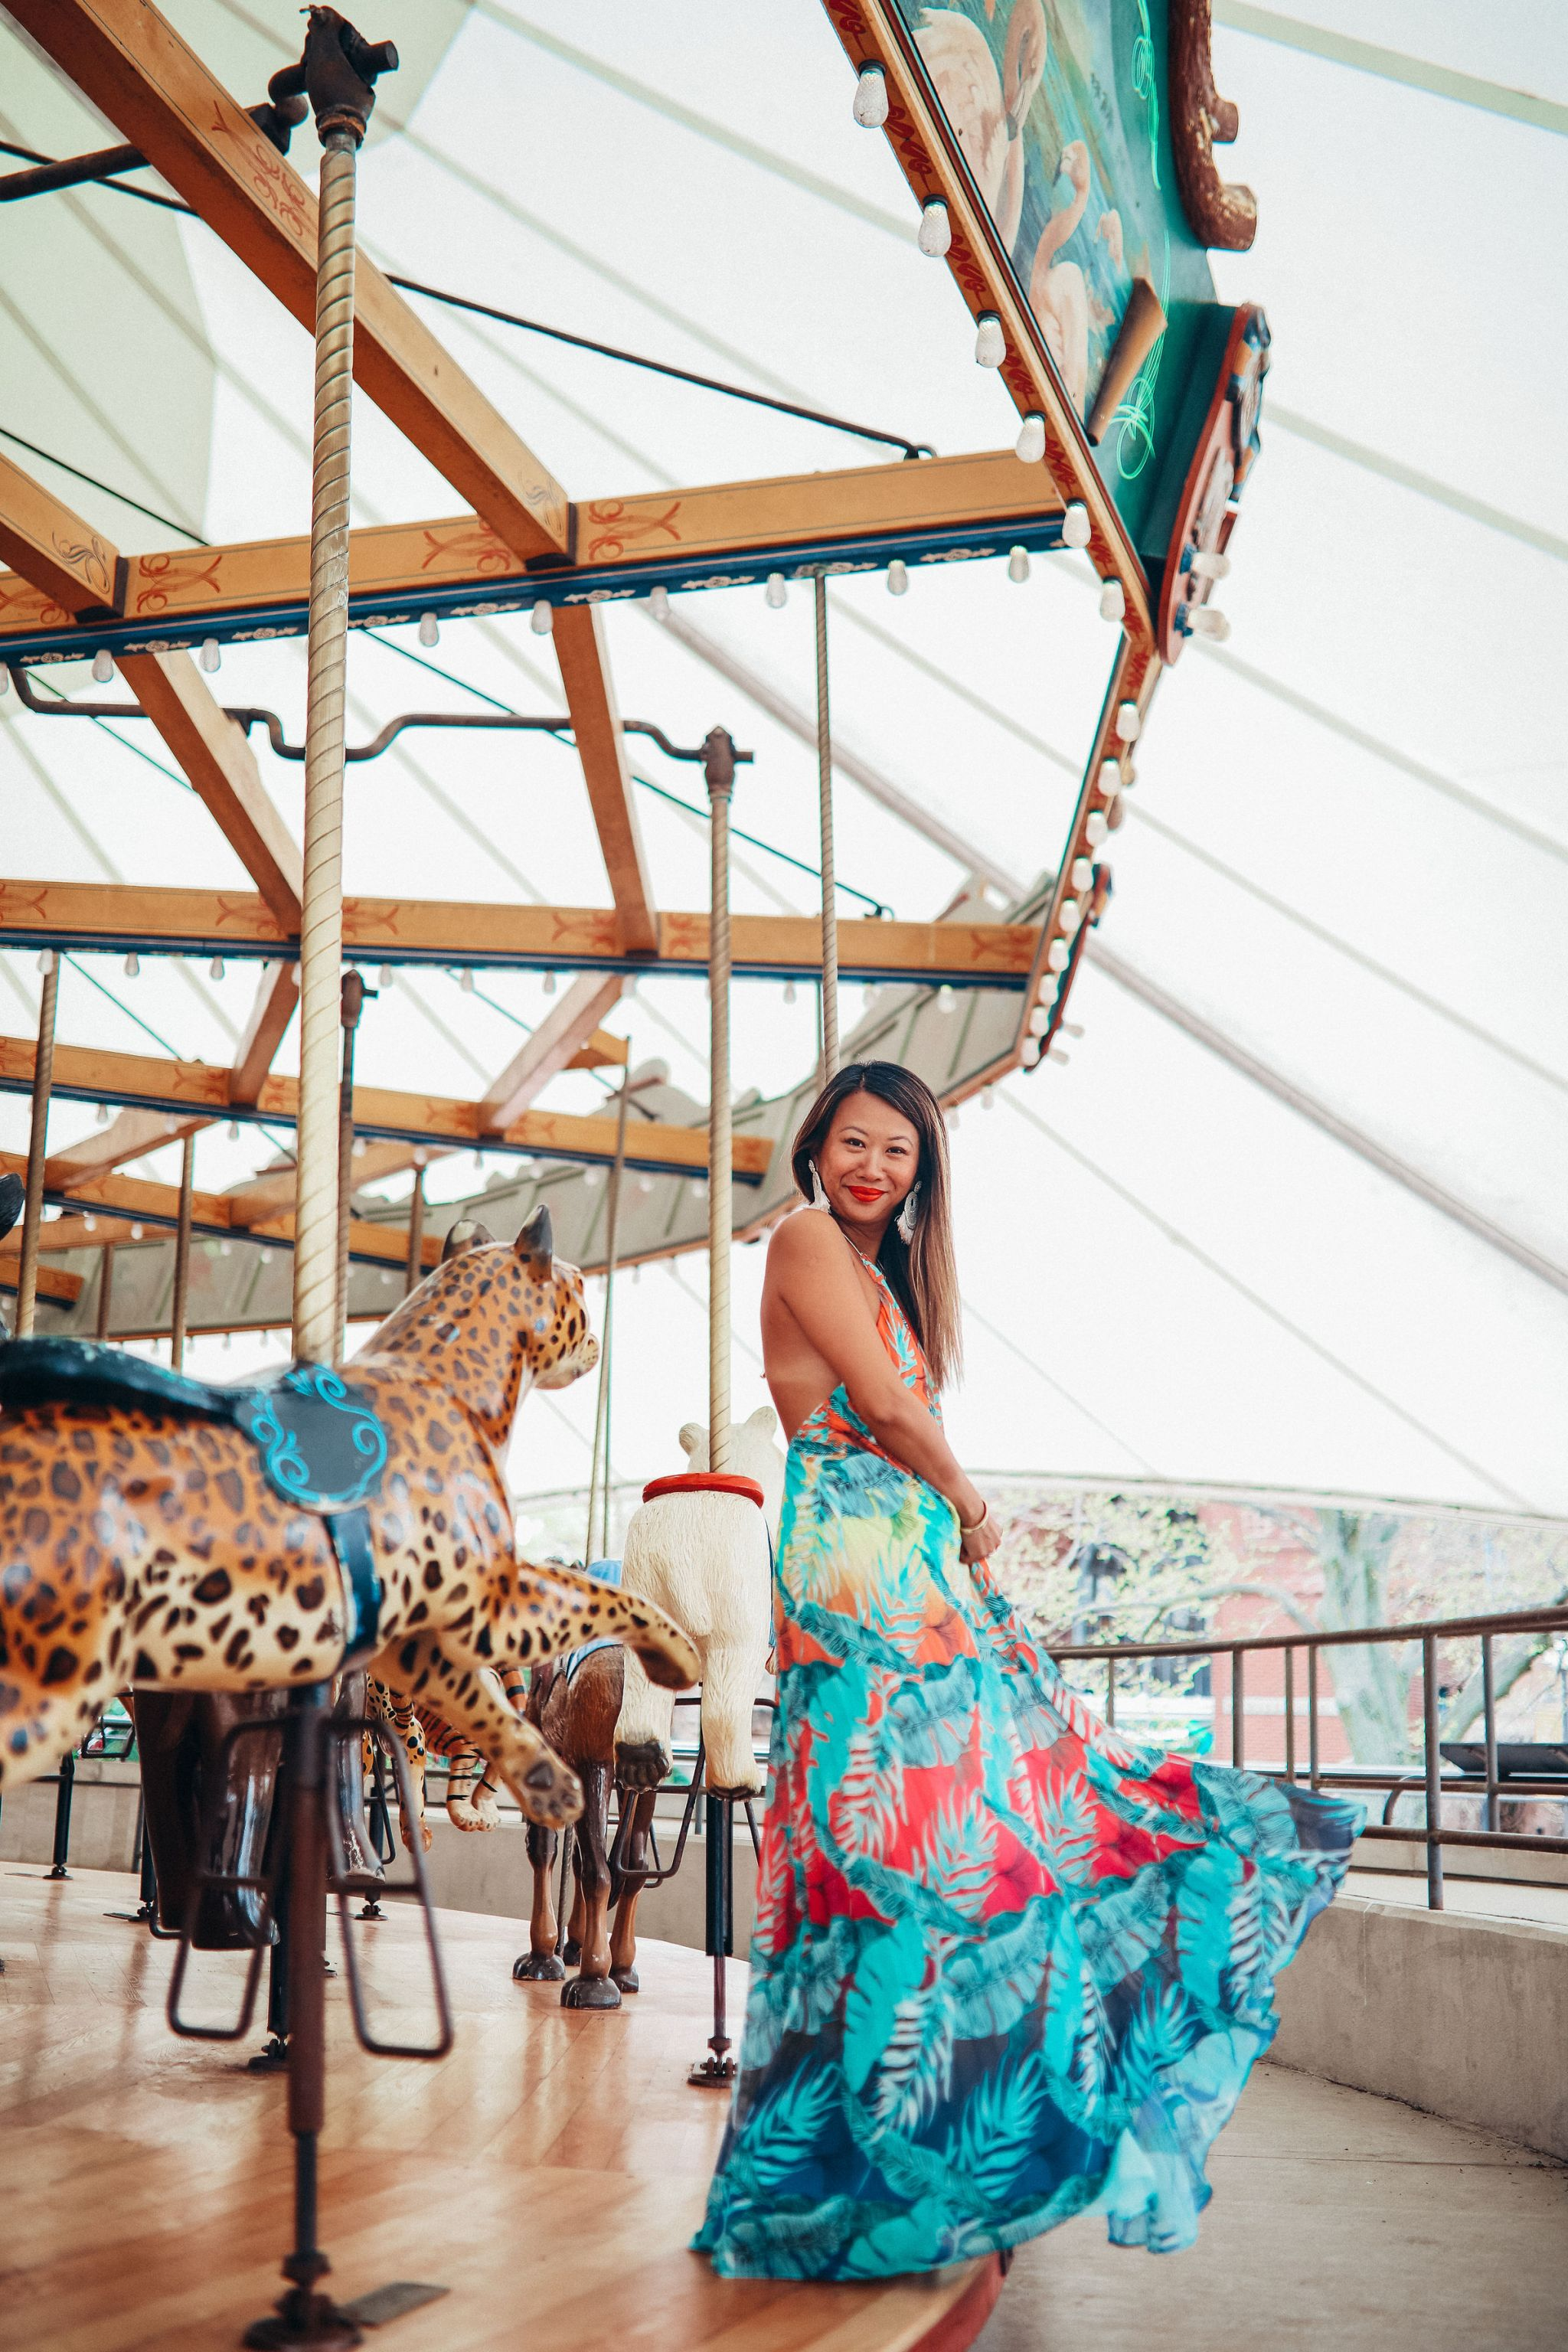 About Jennifer Worman, Chicago Style Blogger, Akira Maxi Dress, Tropical Maxi Dress for Summer, Best Dress for the Summer, Chicago Carousel, Best Places to take Photos in Chicago